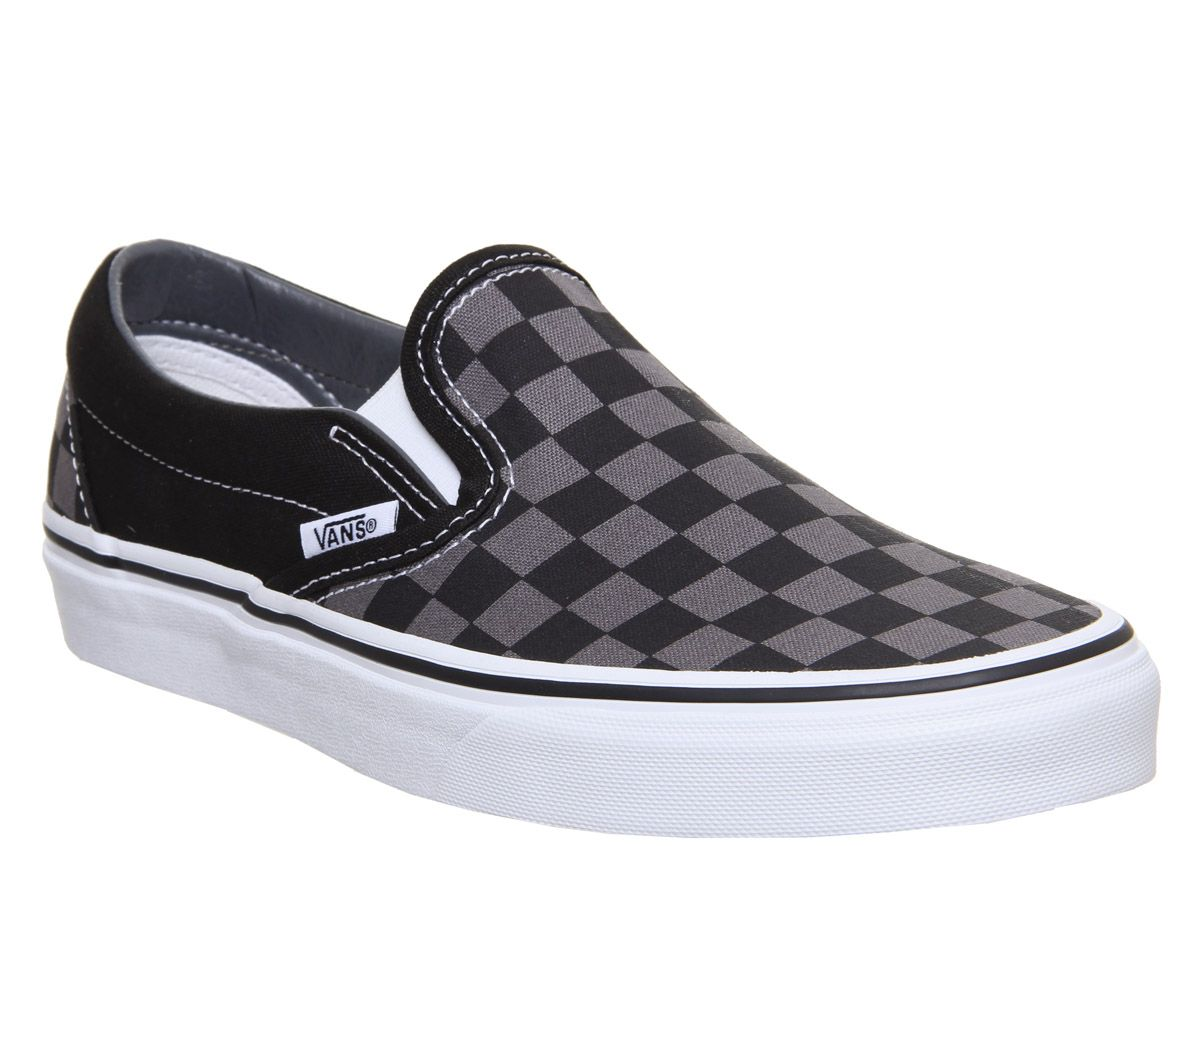 4fd6e6a2bc7589 Vans Vans Classic Slip On Trainers Black Pewter Check - Unisex Sports